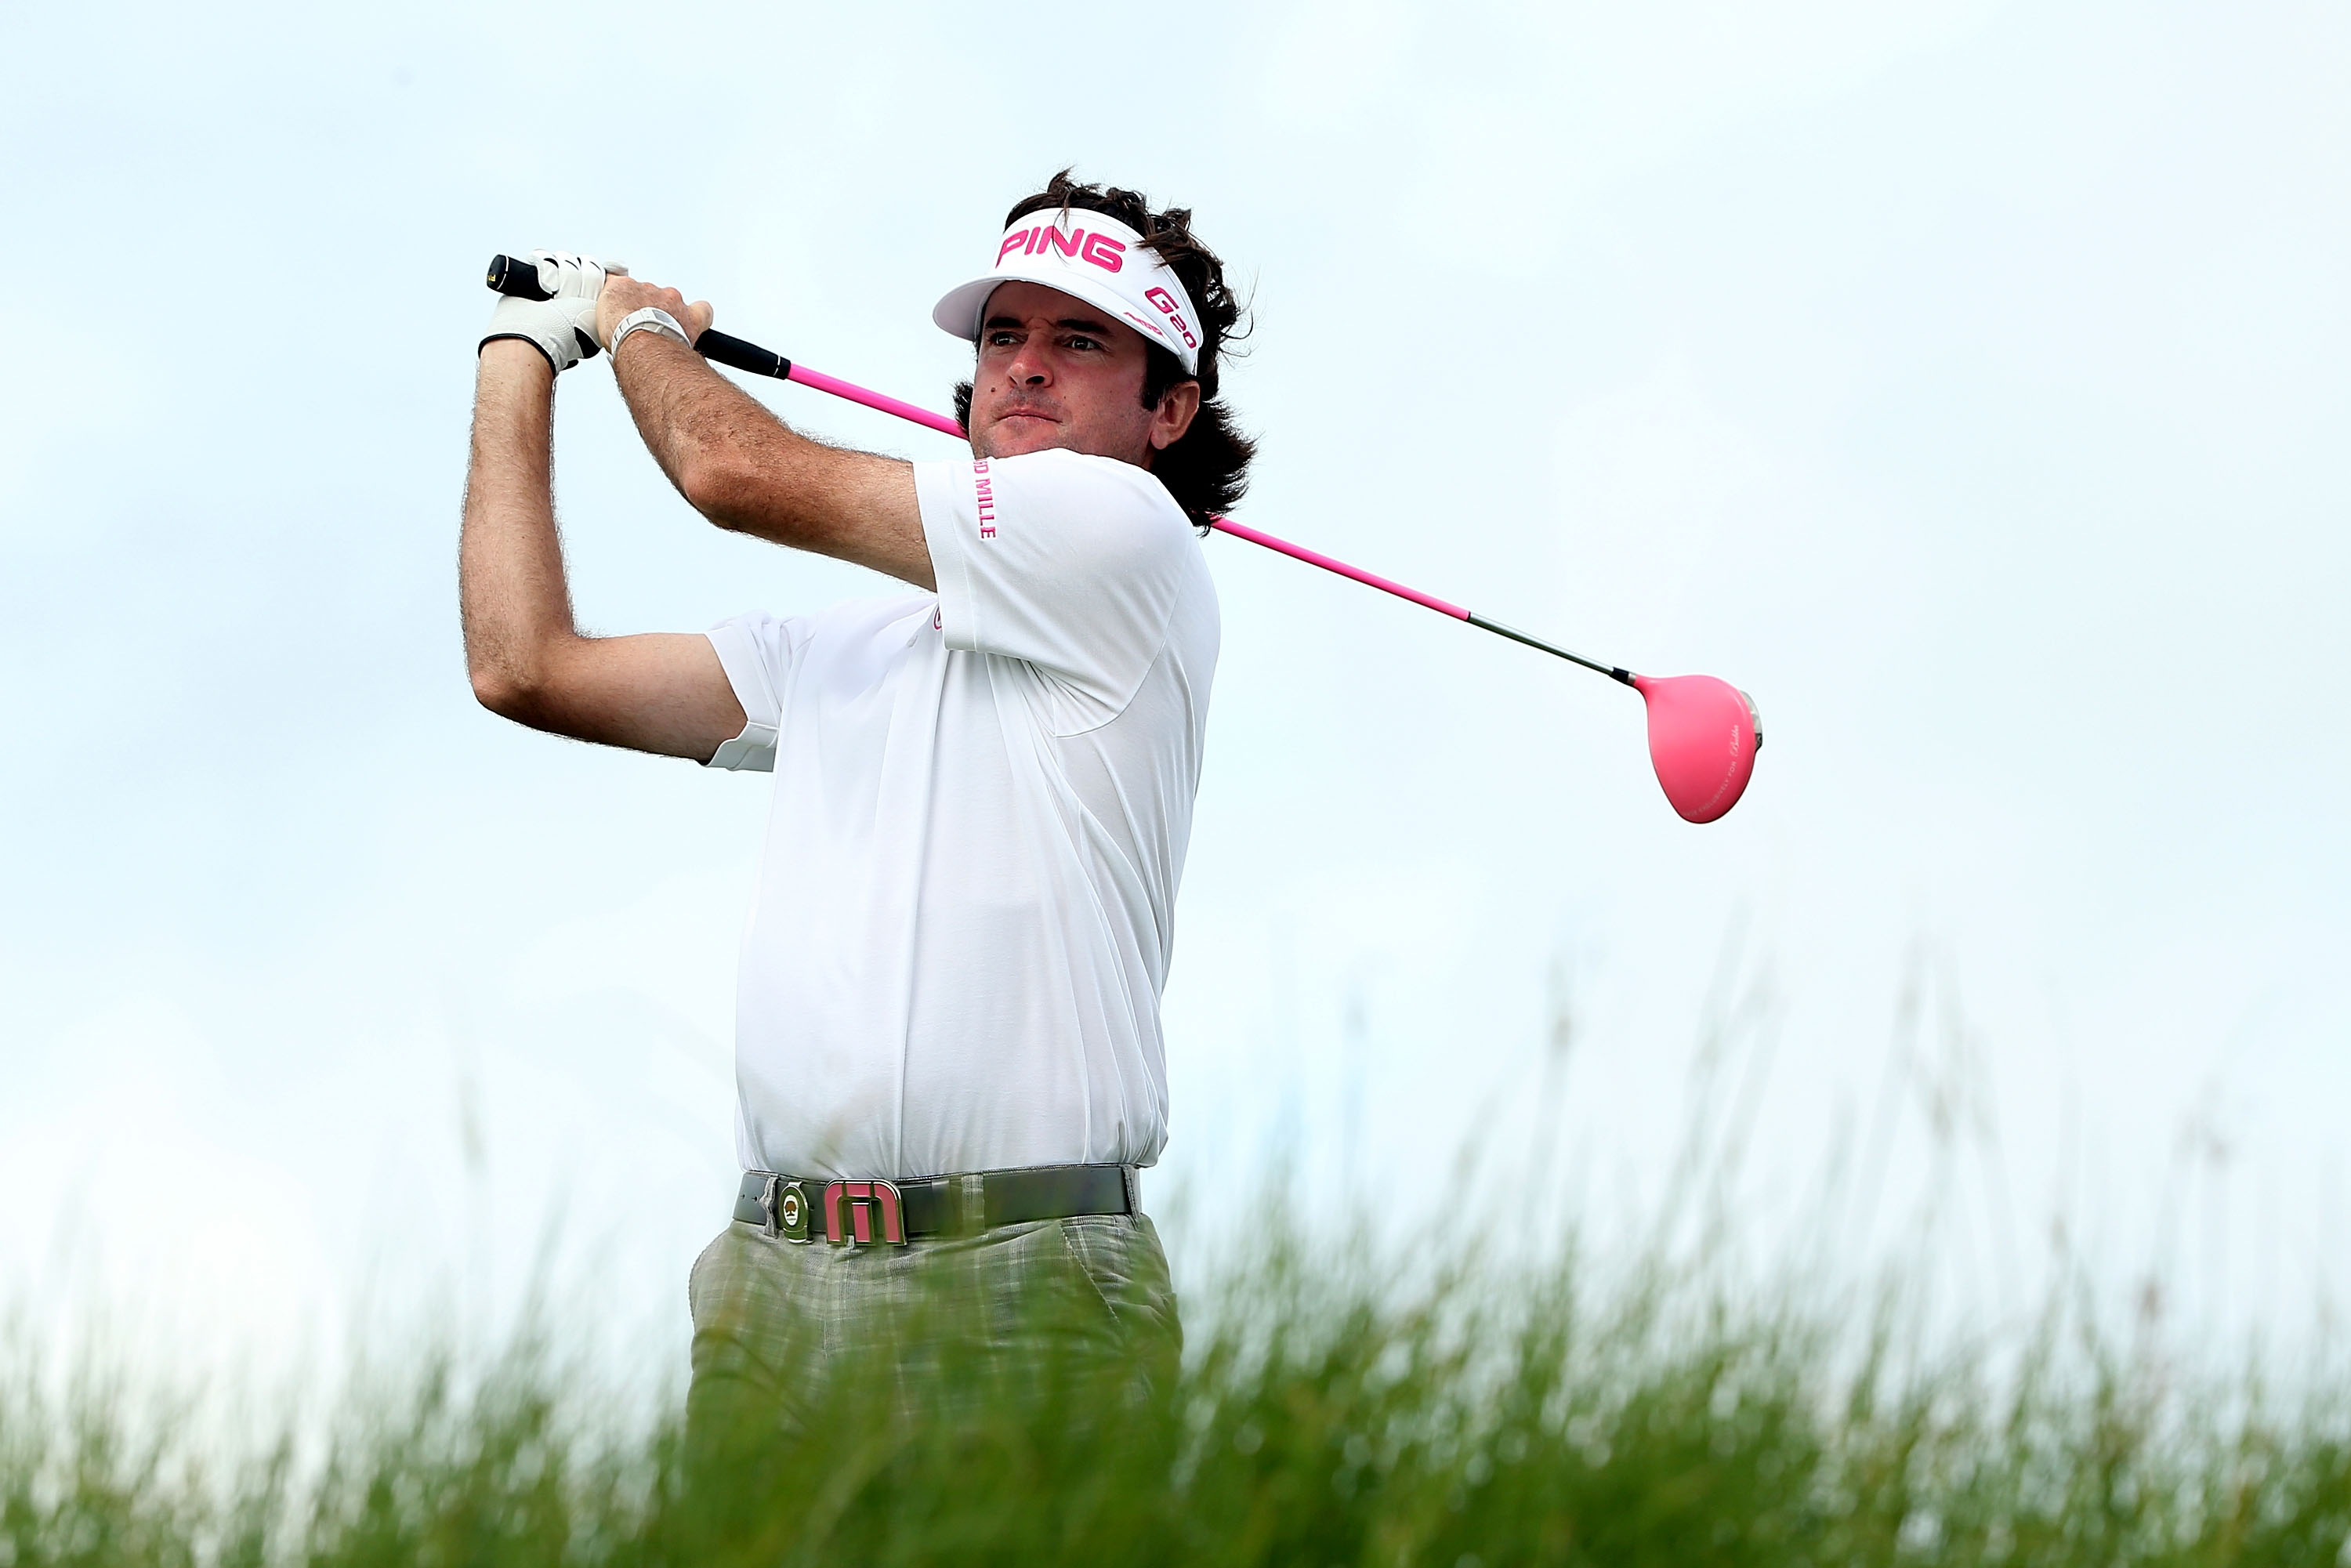 What Sunglasses Is Bubba Watson Wearing?